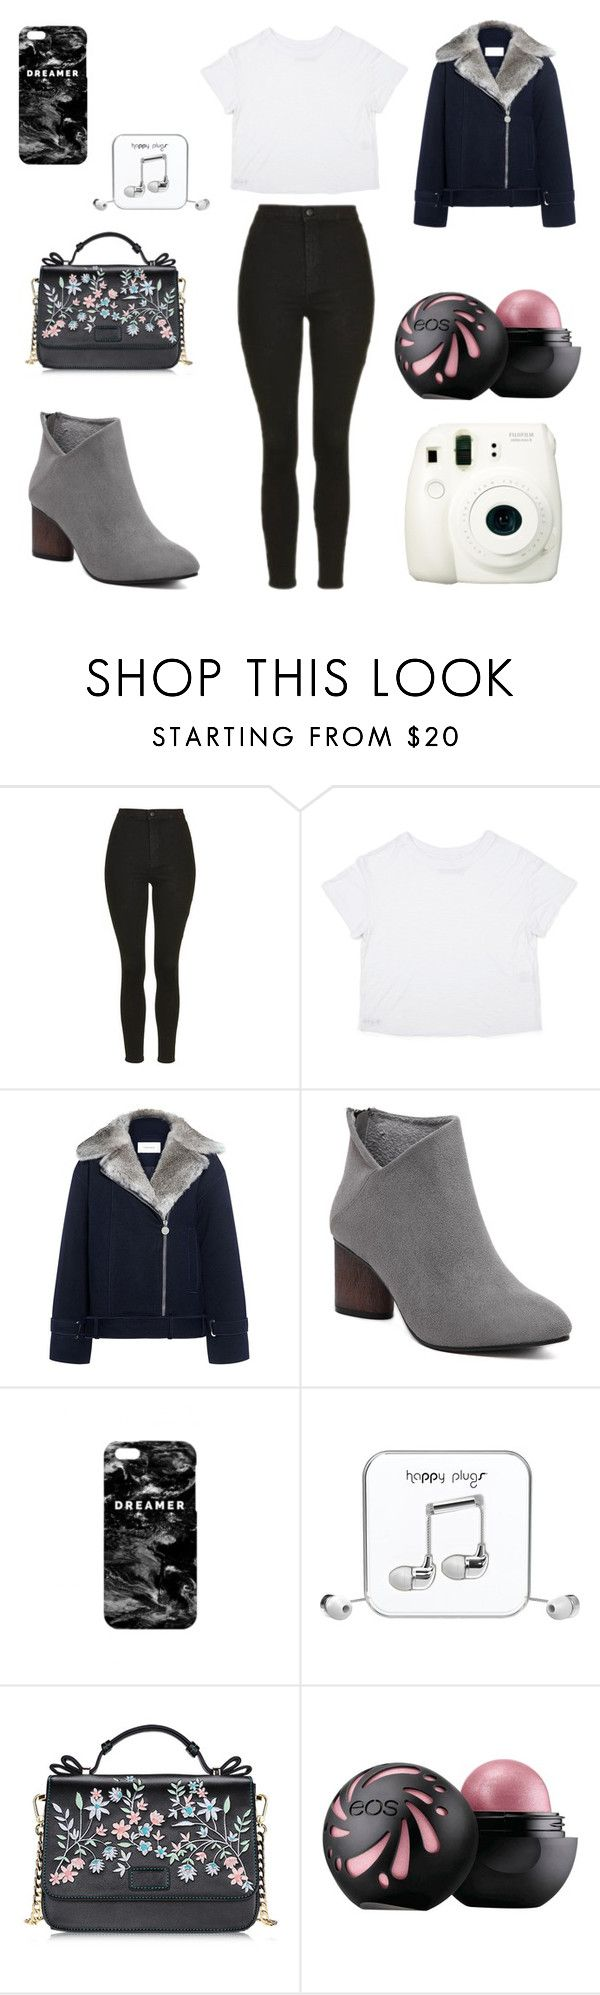 """Untitled #65"" by nazare-cruz ❤ liked on Polyvore featuring beauty, Topshop, Carven, Mr. Gugu & Miss Go, Happy Plugs and Fuji"